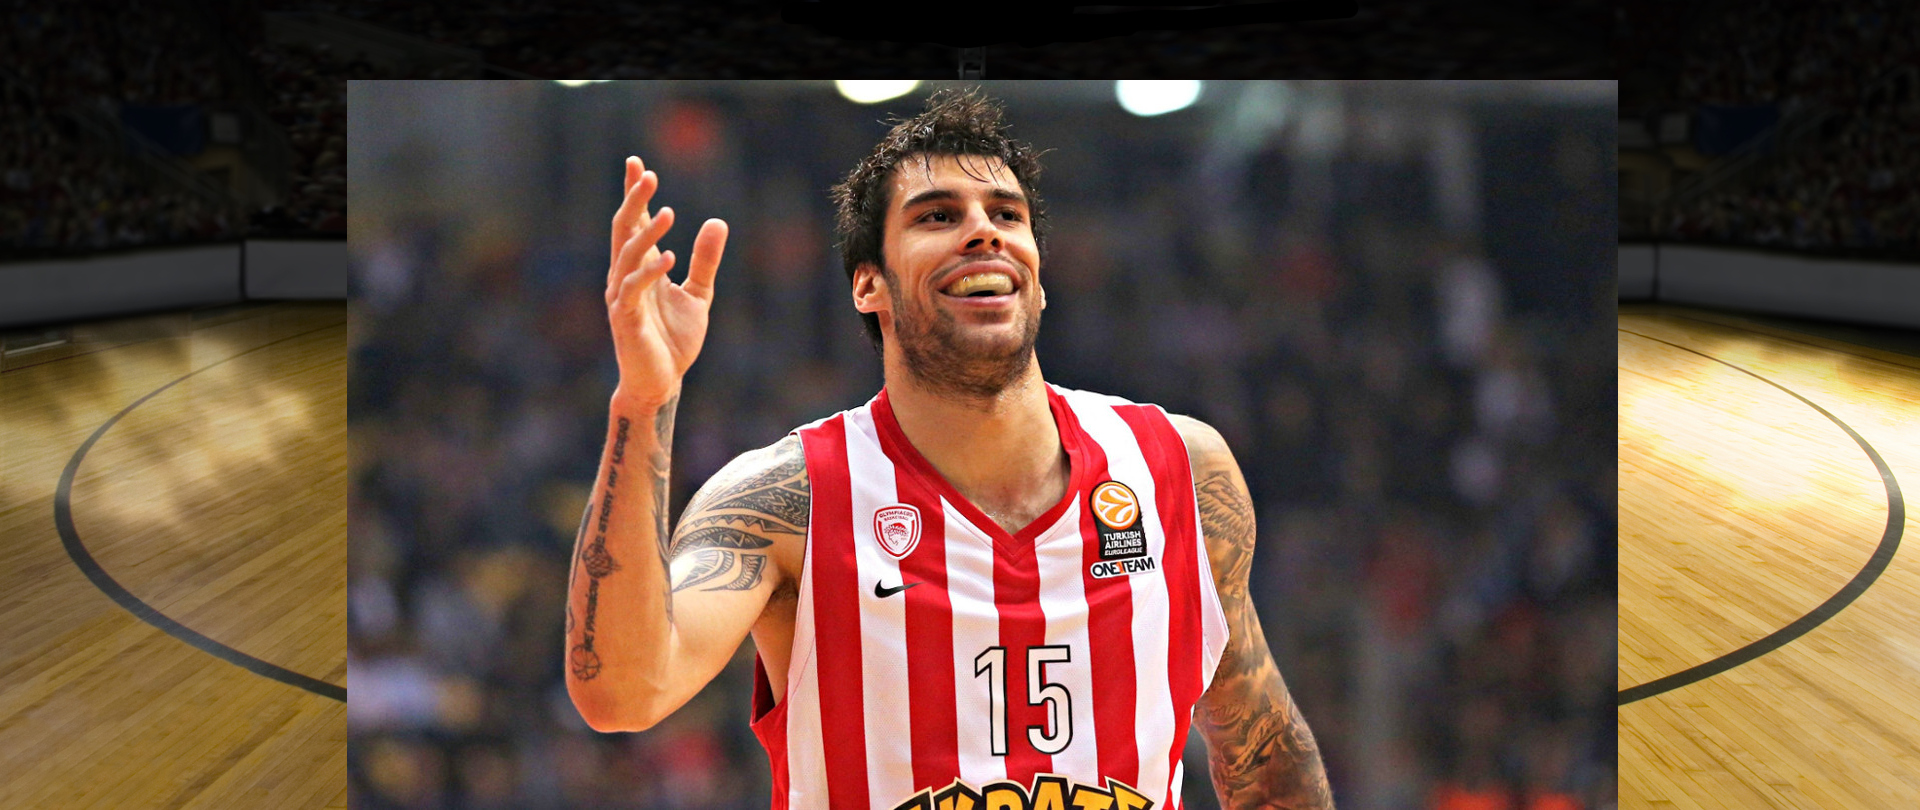 Printezis extends with Olympiacos for 3 seasons